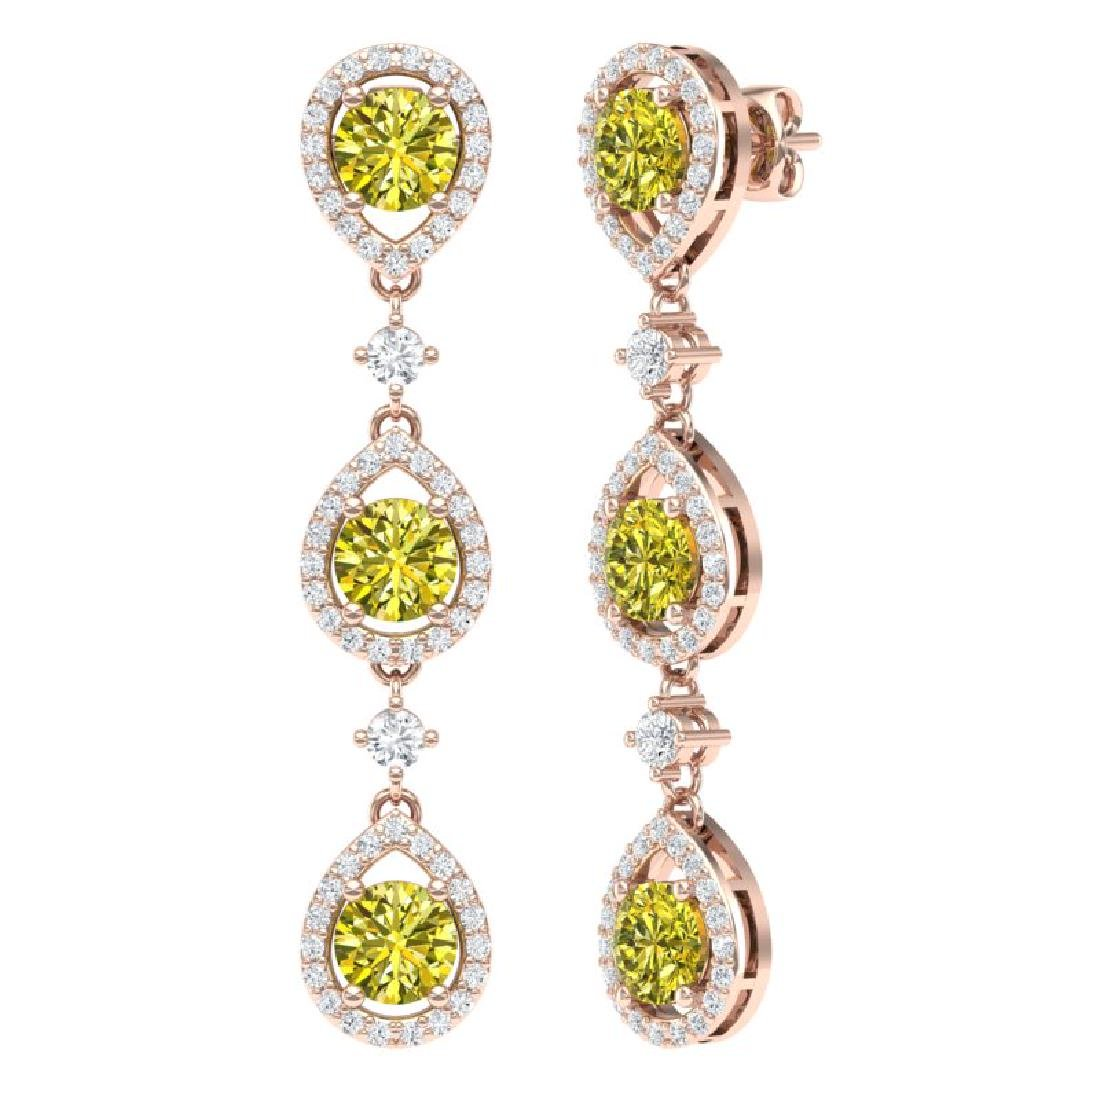 5.11 CTW Fancy Yellow SI Diamond Earrings 18K Rose Gold - 3